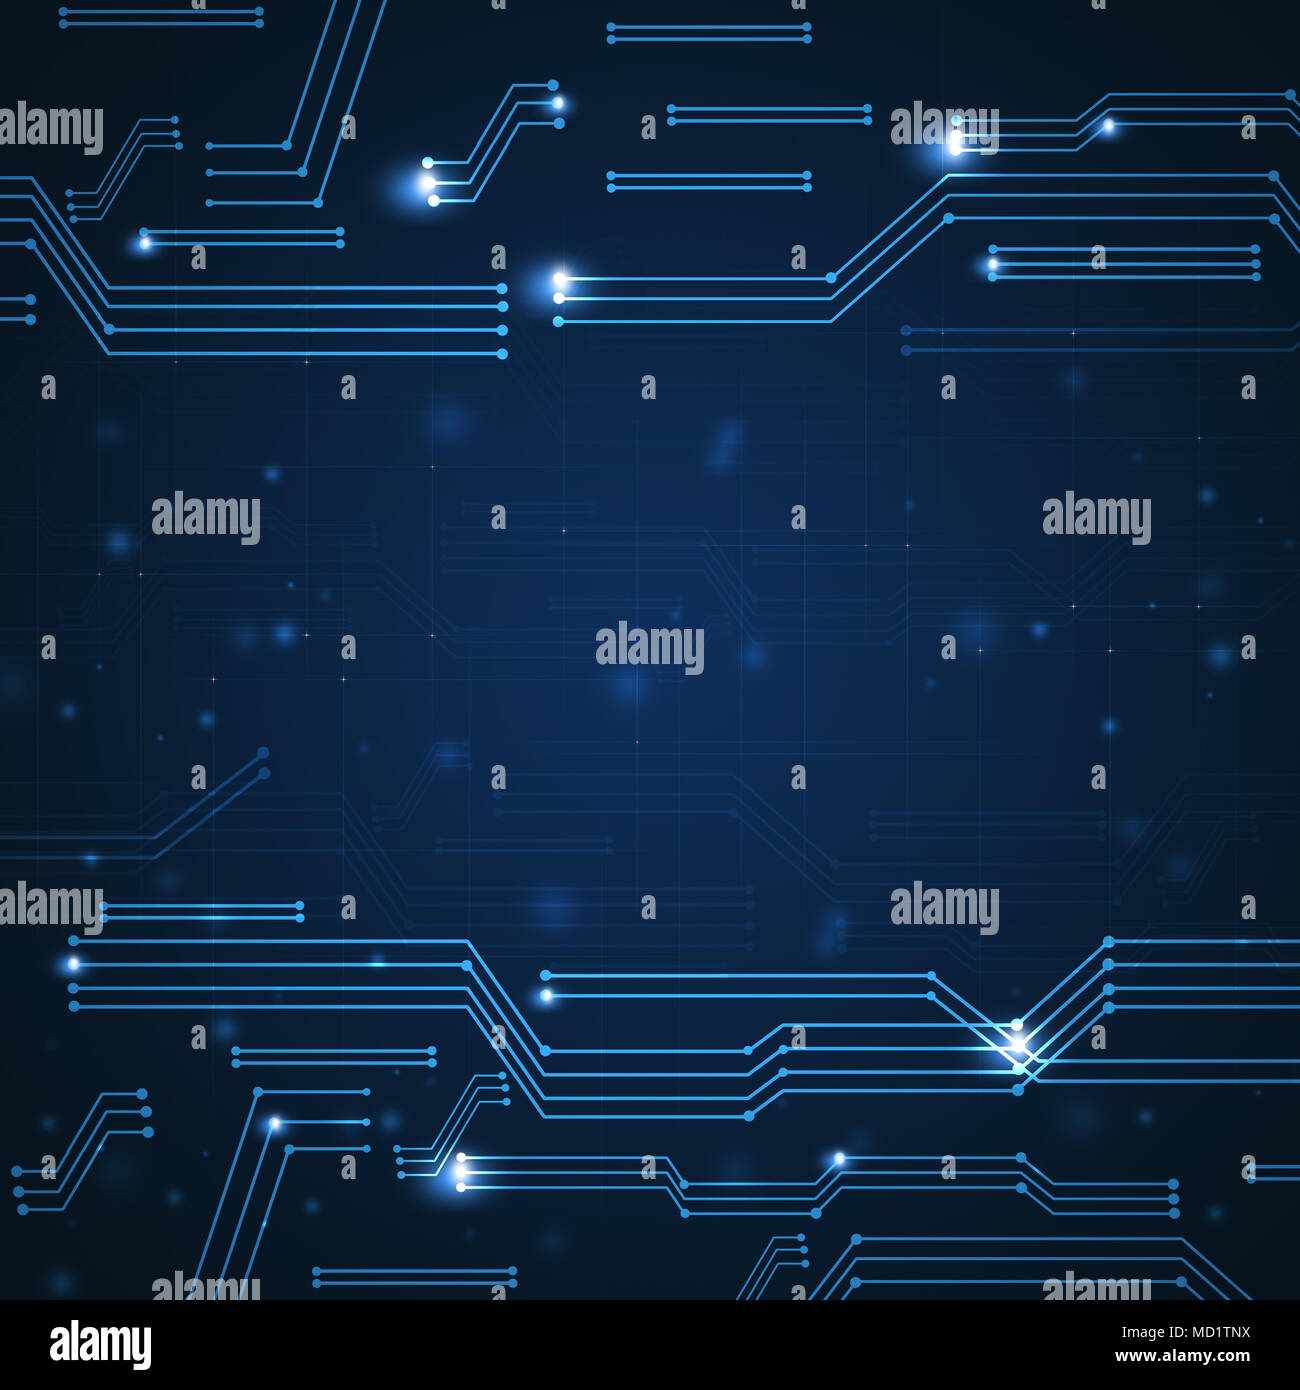 digital concept graphic scheme connections technology background - Stock Image